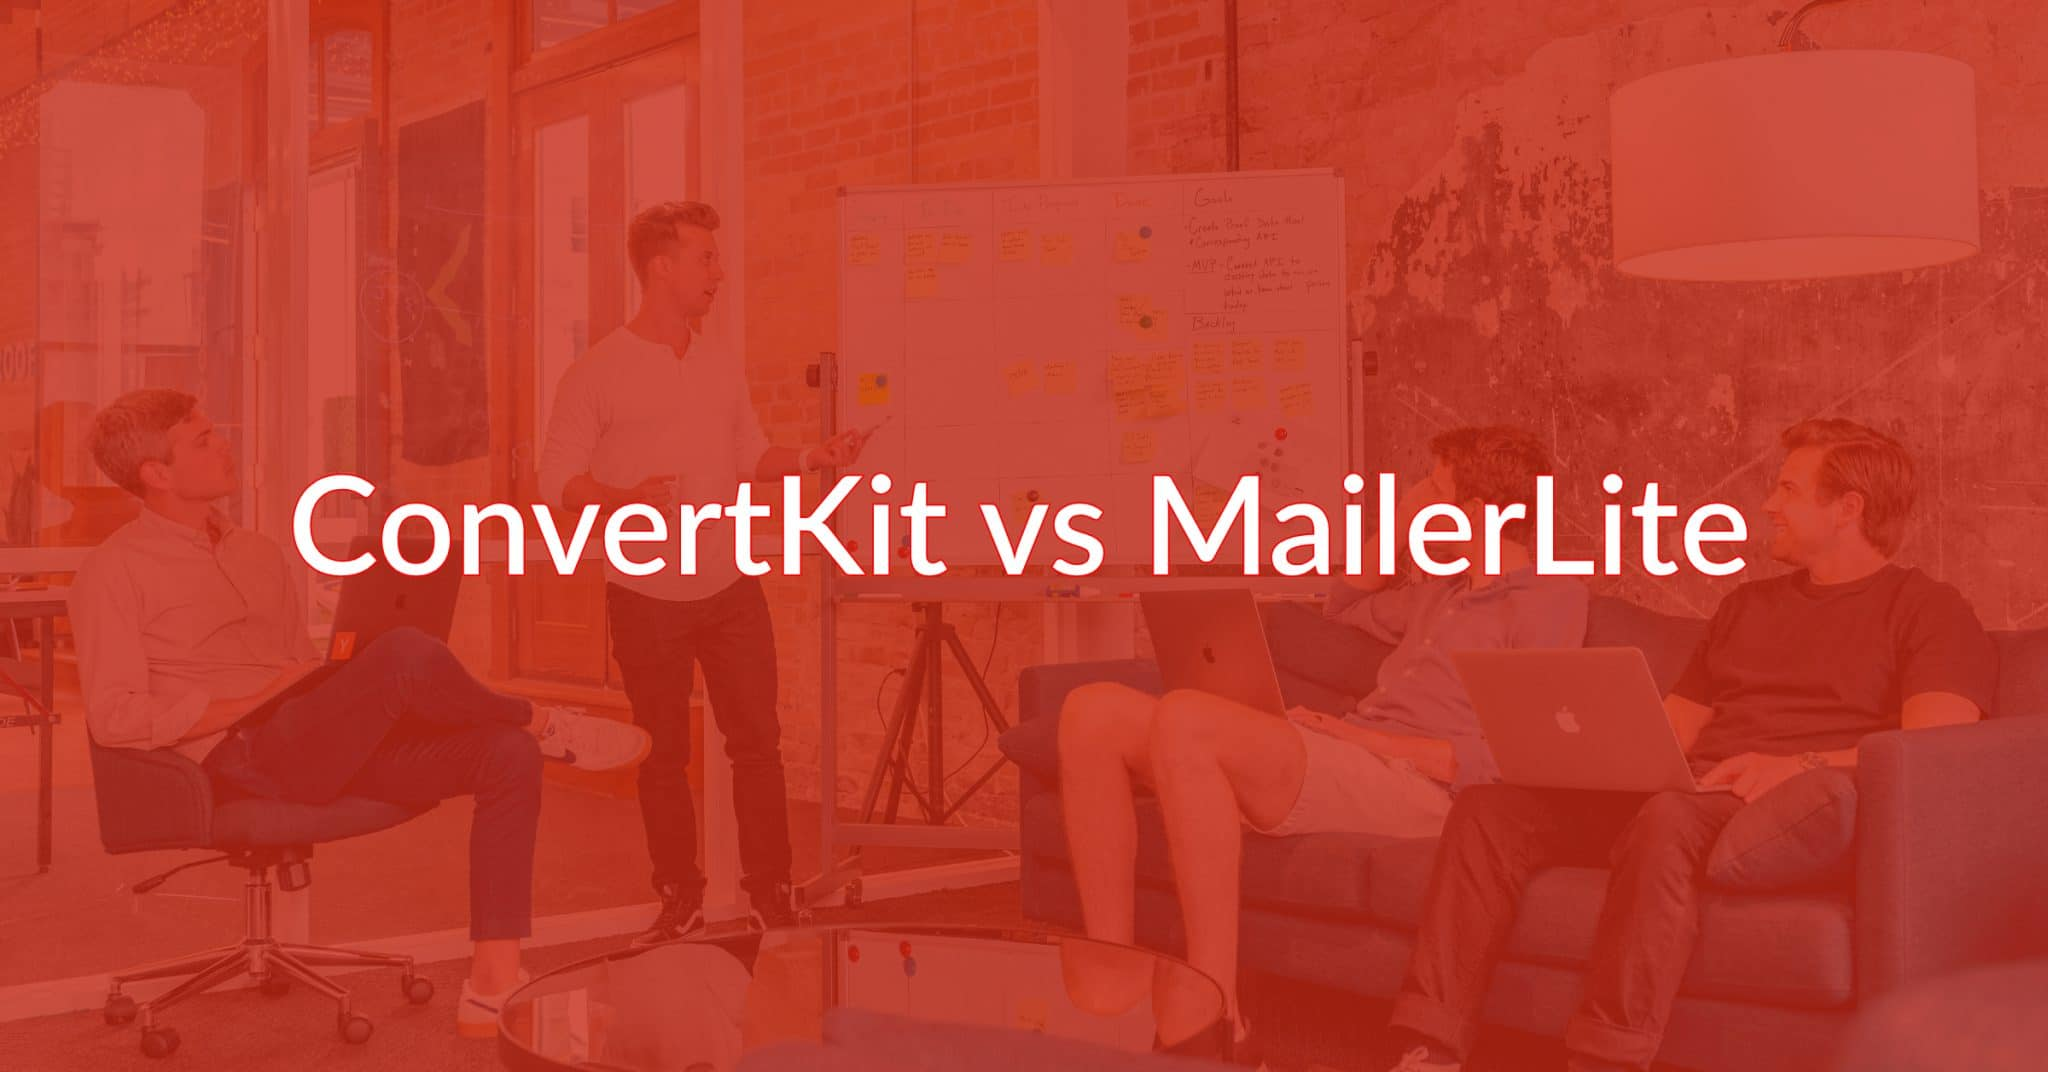 ConvertKit vs MailerLite: Which One Should You Be Using?